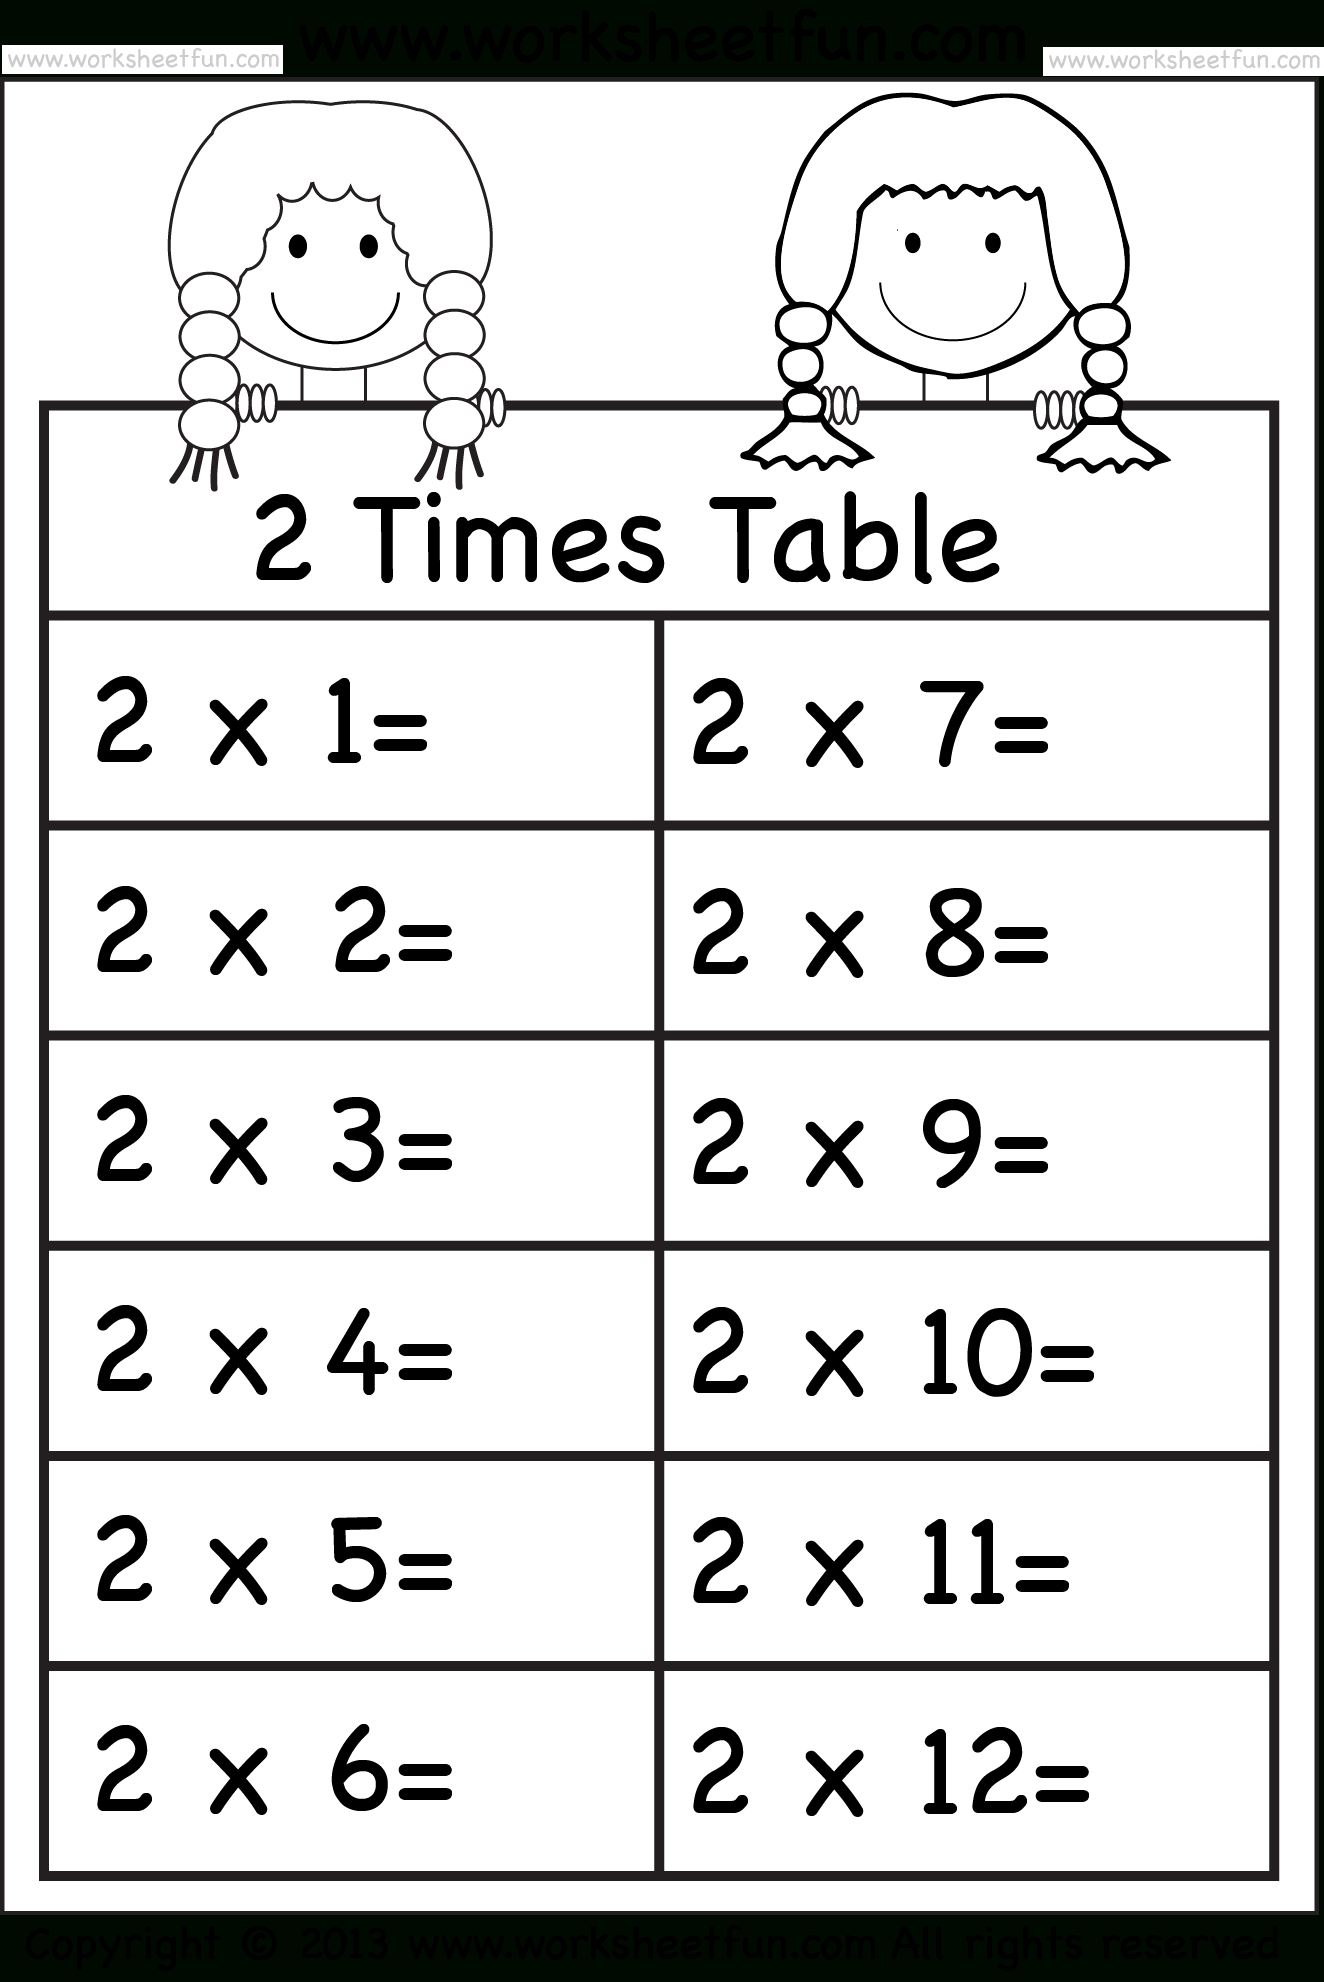 Times Tables Worksheets – 2, 3, 4, 5, 6, 7, 8, 9, 10, 11 And 12 | 5 Times Table Worksheet Printable